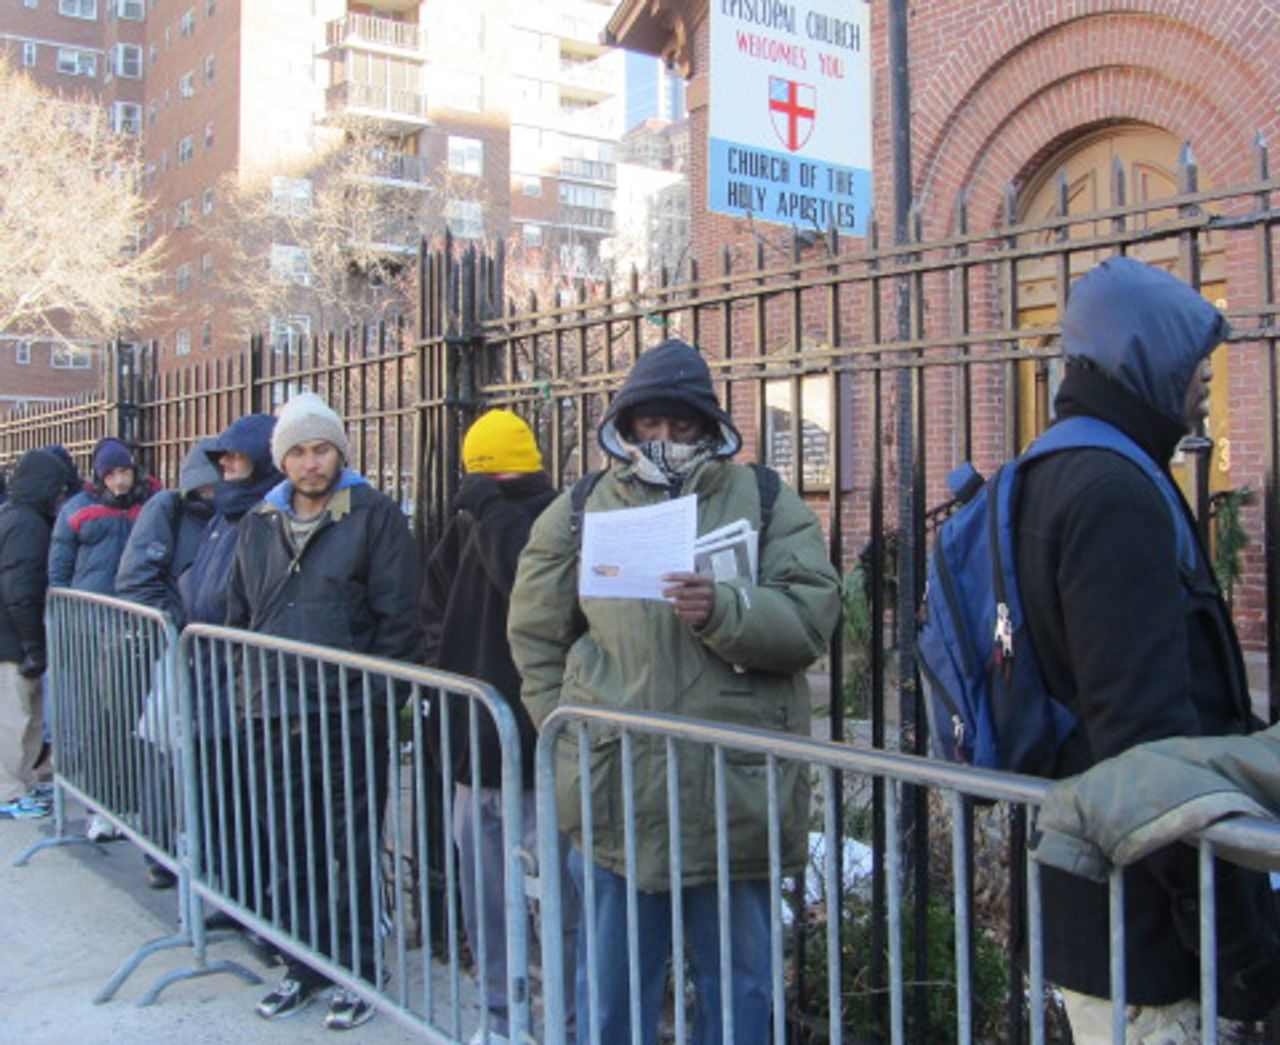 Line up for hot meal at Church of the Holy Apostles in Manhattan